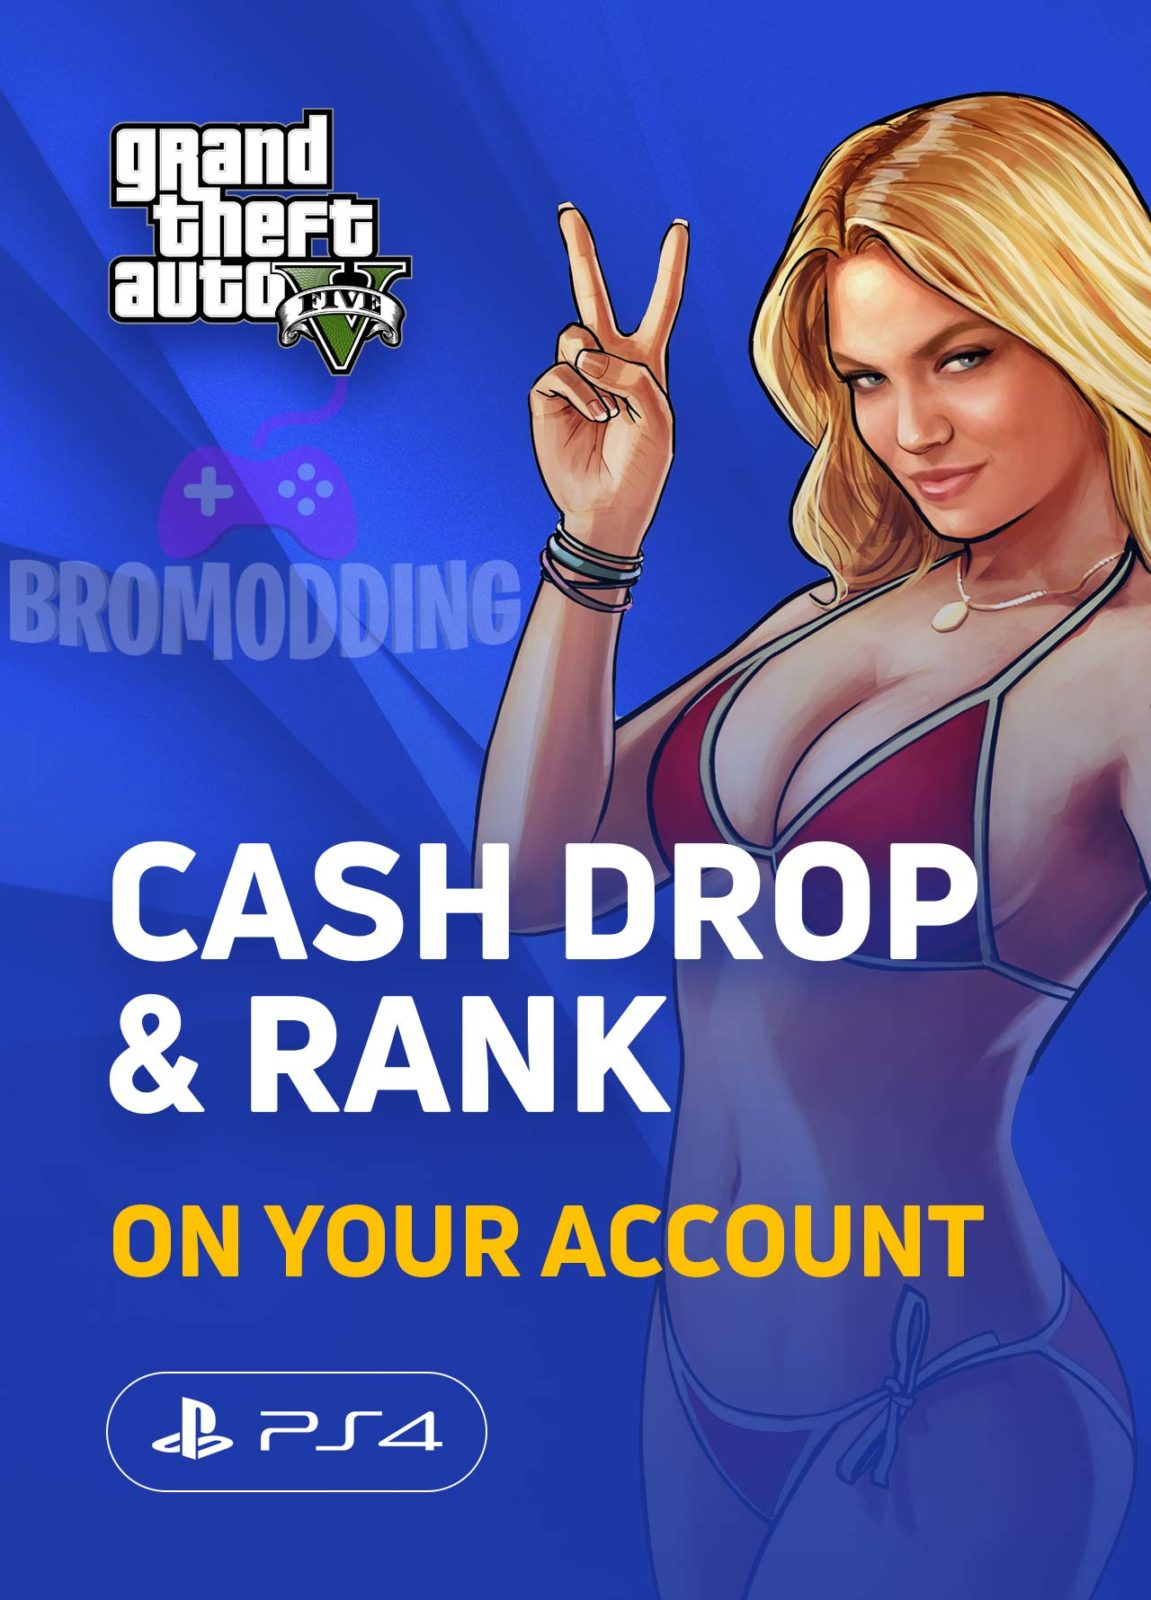 Buy GTA Online Modded Accounts PS4, Xbox One, cash drops |